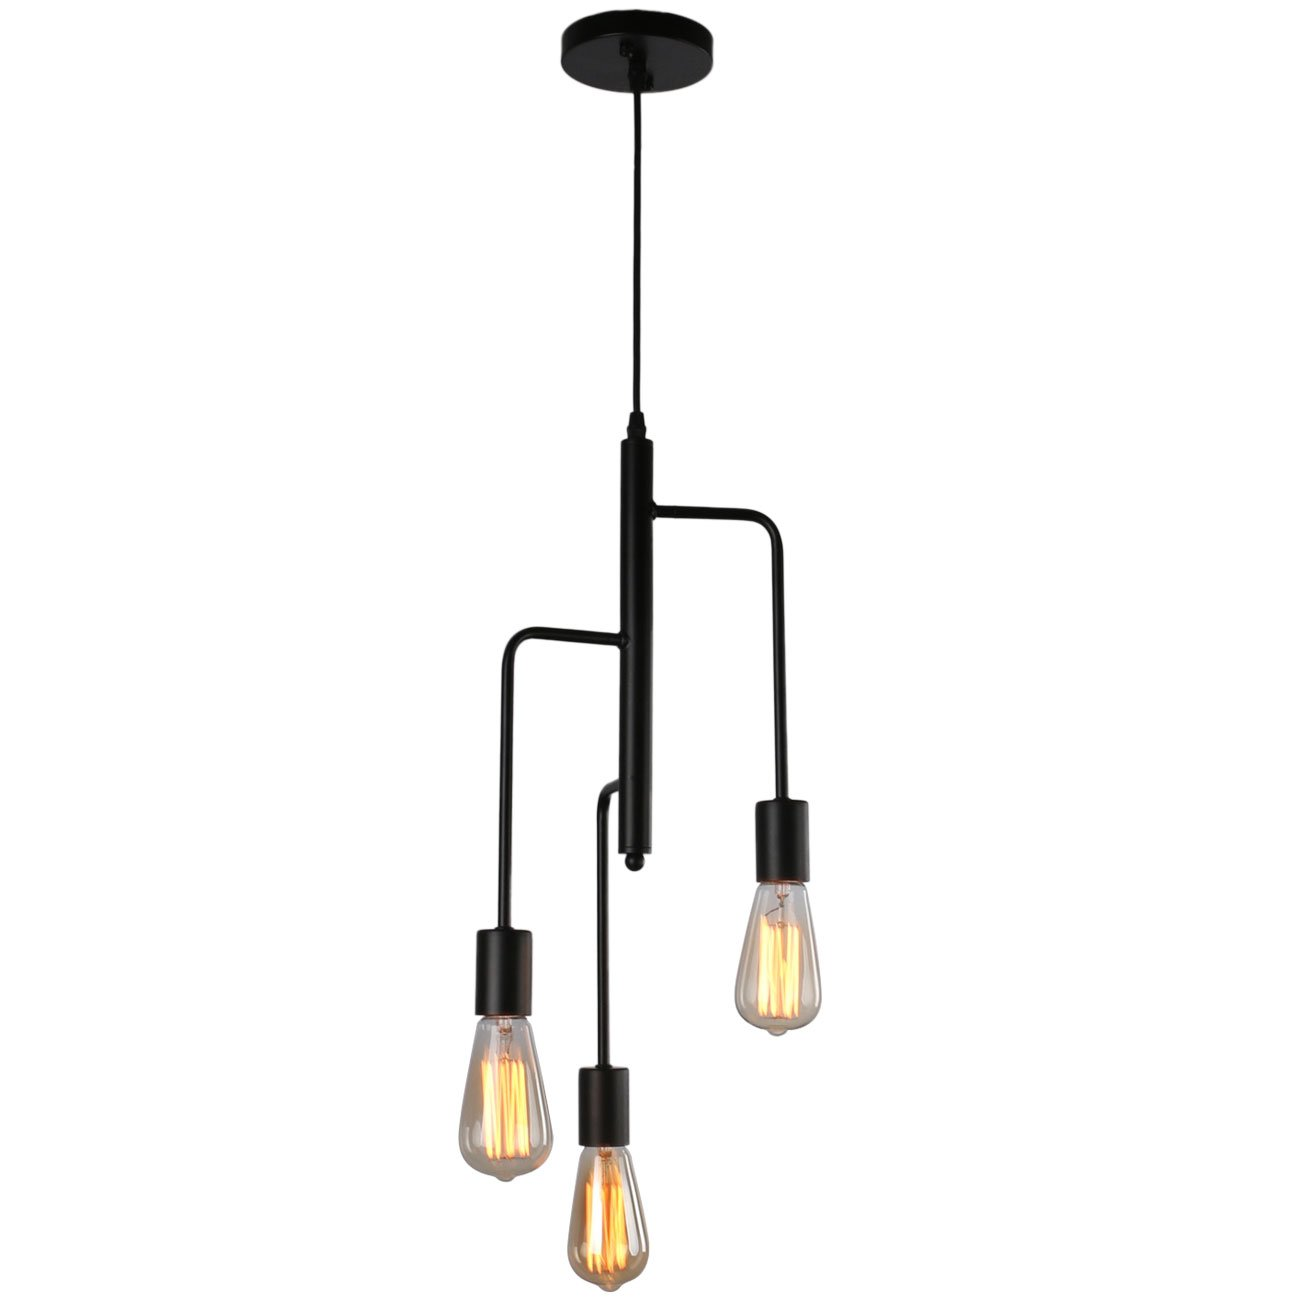 Unitary Brand Modern Black Metal Art Deco Dining Room Pendant Light with 3 E26 Bulb Sockets 120W Painted Finish